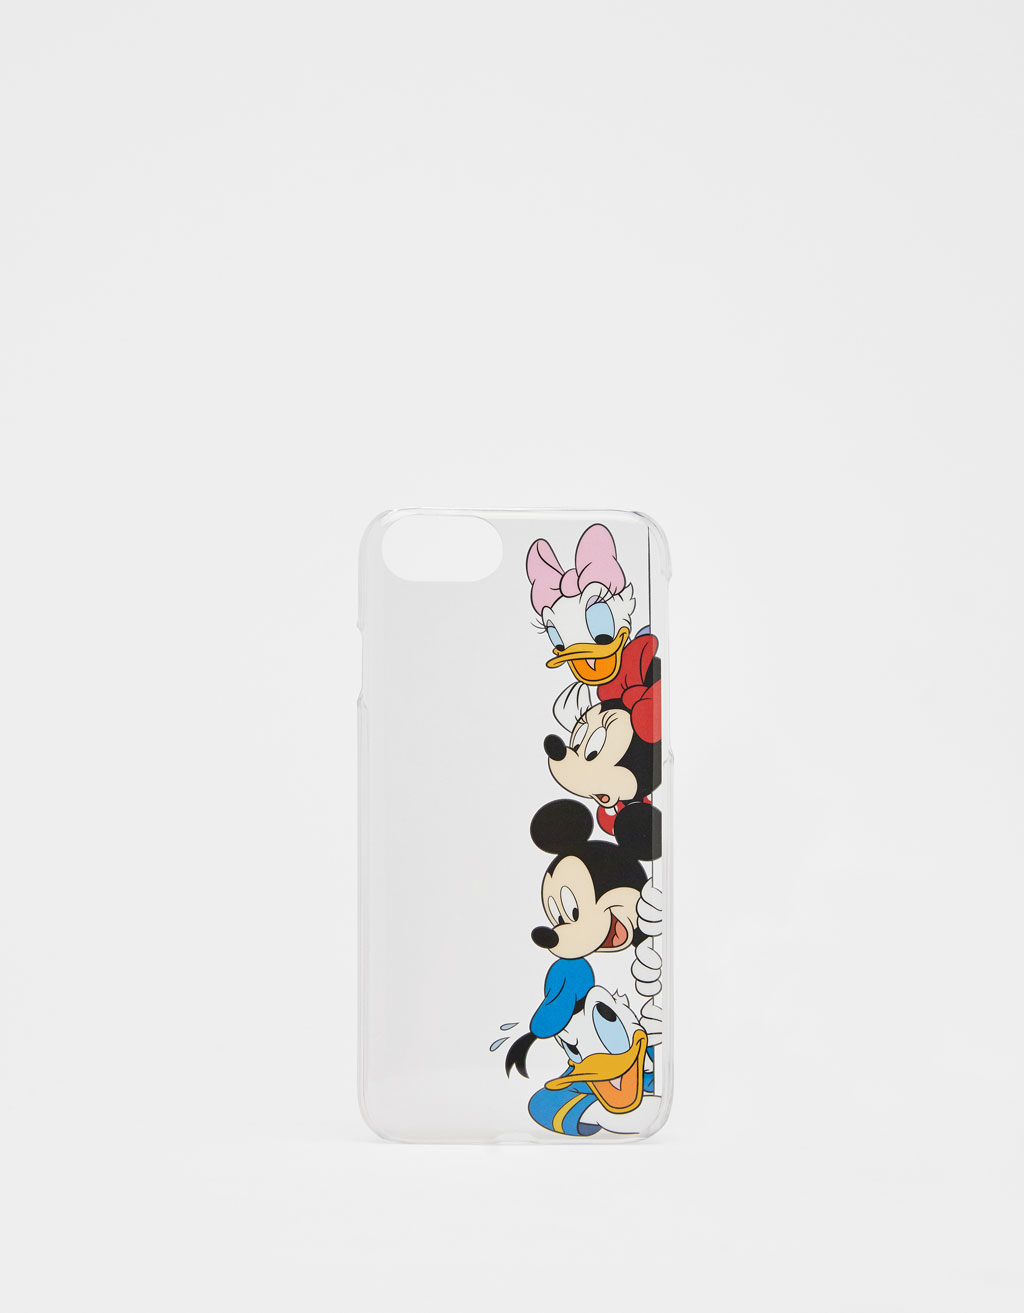 Capa Disney para iPhone 6 / 6S / 7 / 8